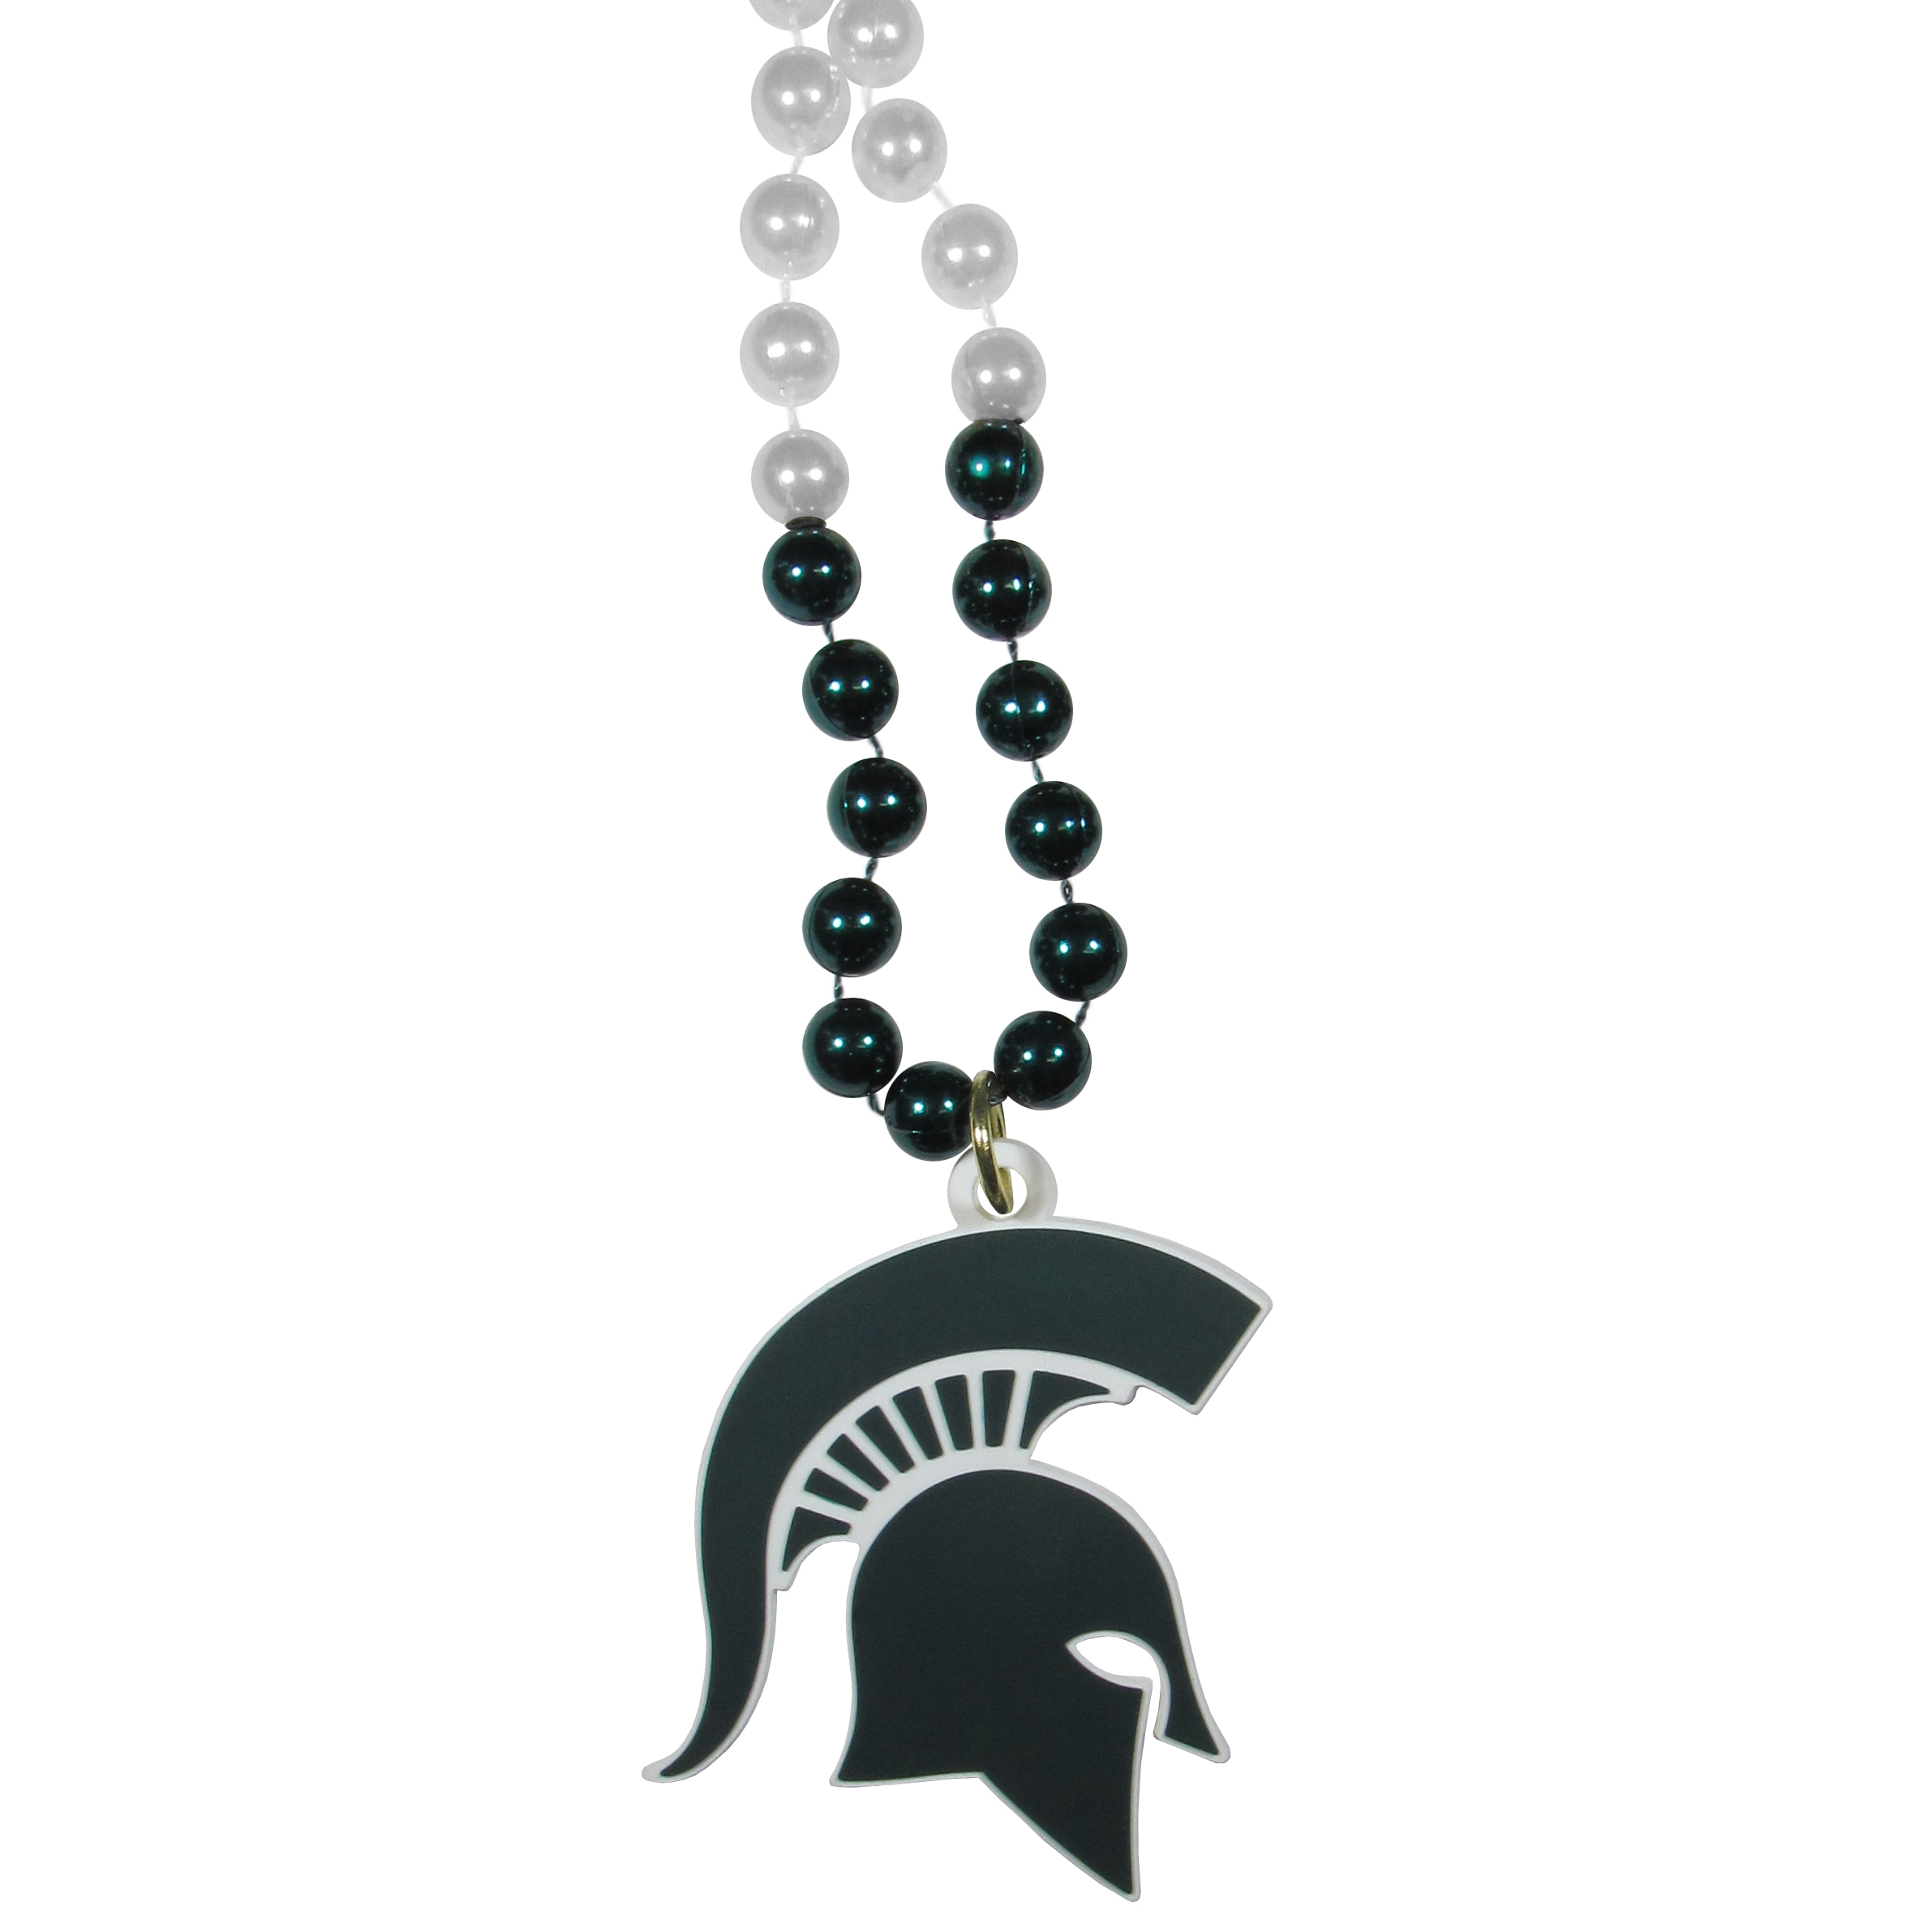 Michigan St. Spartans Mardi Gras Necklace - Get the party started with this Mardi Gras inspired bead necklace. The flashy beads have a shiny finish and come in bright team colors strung together on a 36 inch string so you can make a big statement on game day! The beads come with an extra large flexible team logo that is a full 3 inches at its widest point. This trendy and bold necklace screams out your Michigan St. Spartans pride and is a must have at game time!